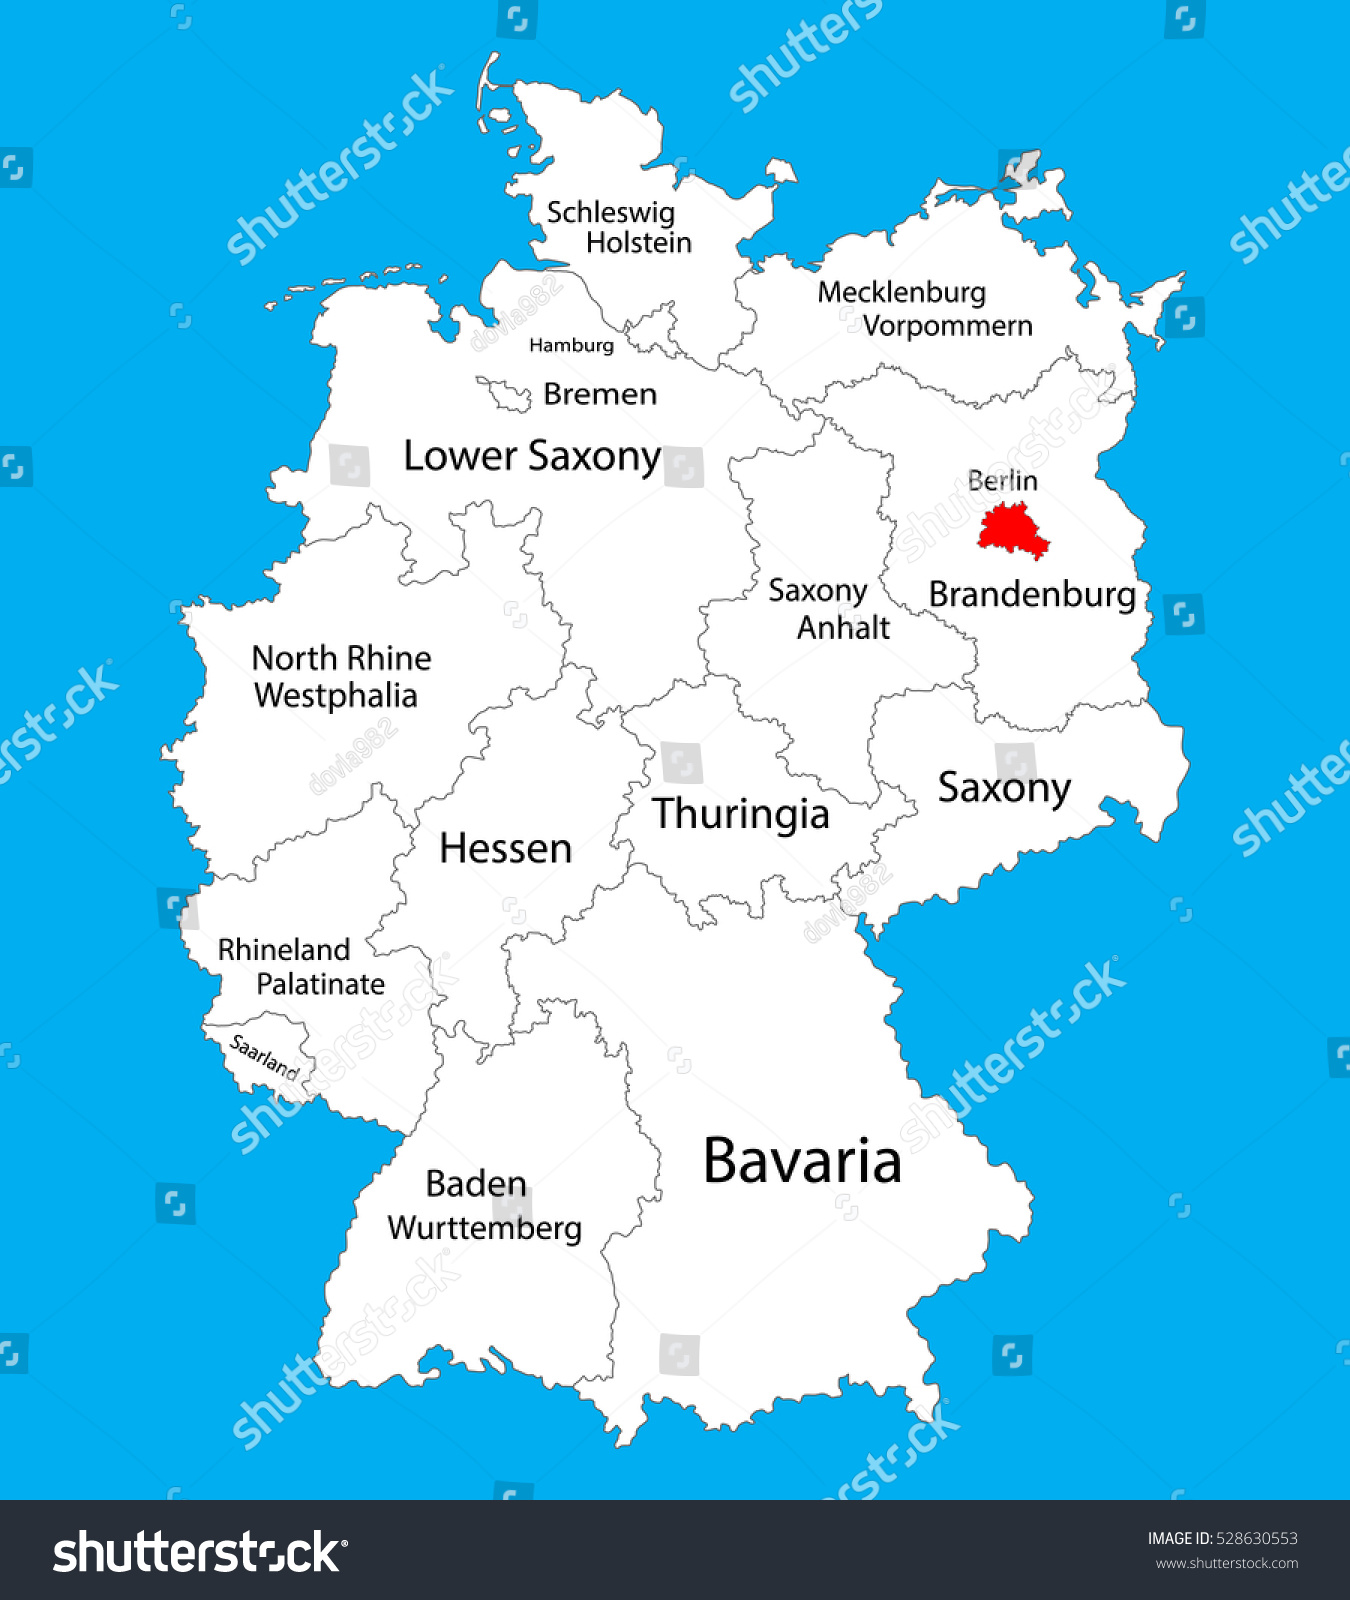 berlin state map germany vector map silhouette illustration isolated on germany map editable